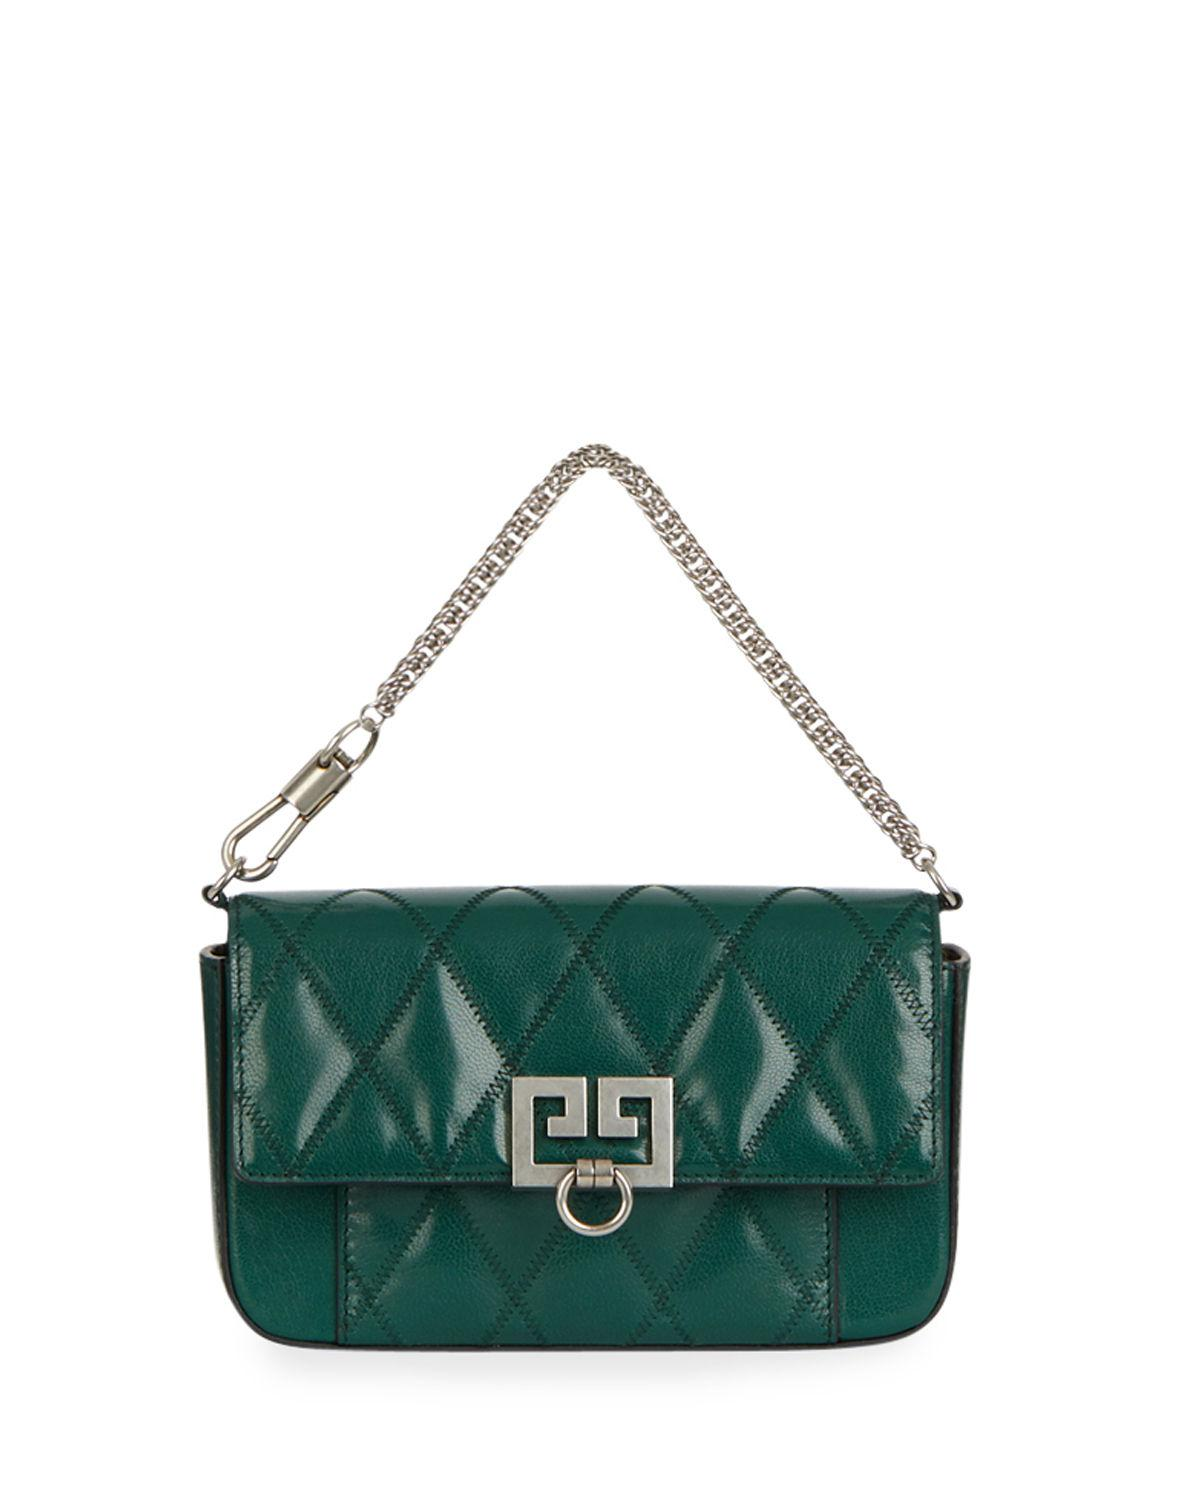 Givenchy. Women s Green Pocket Mini Pouch Convertible Clutch belt Bag ... 27c3706019026